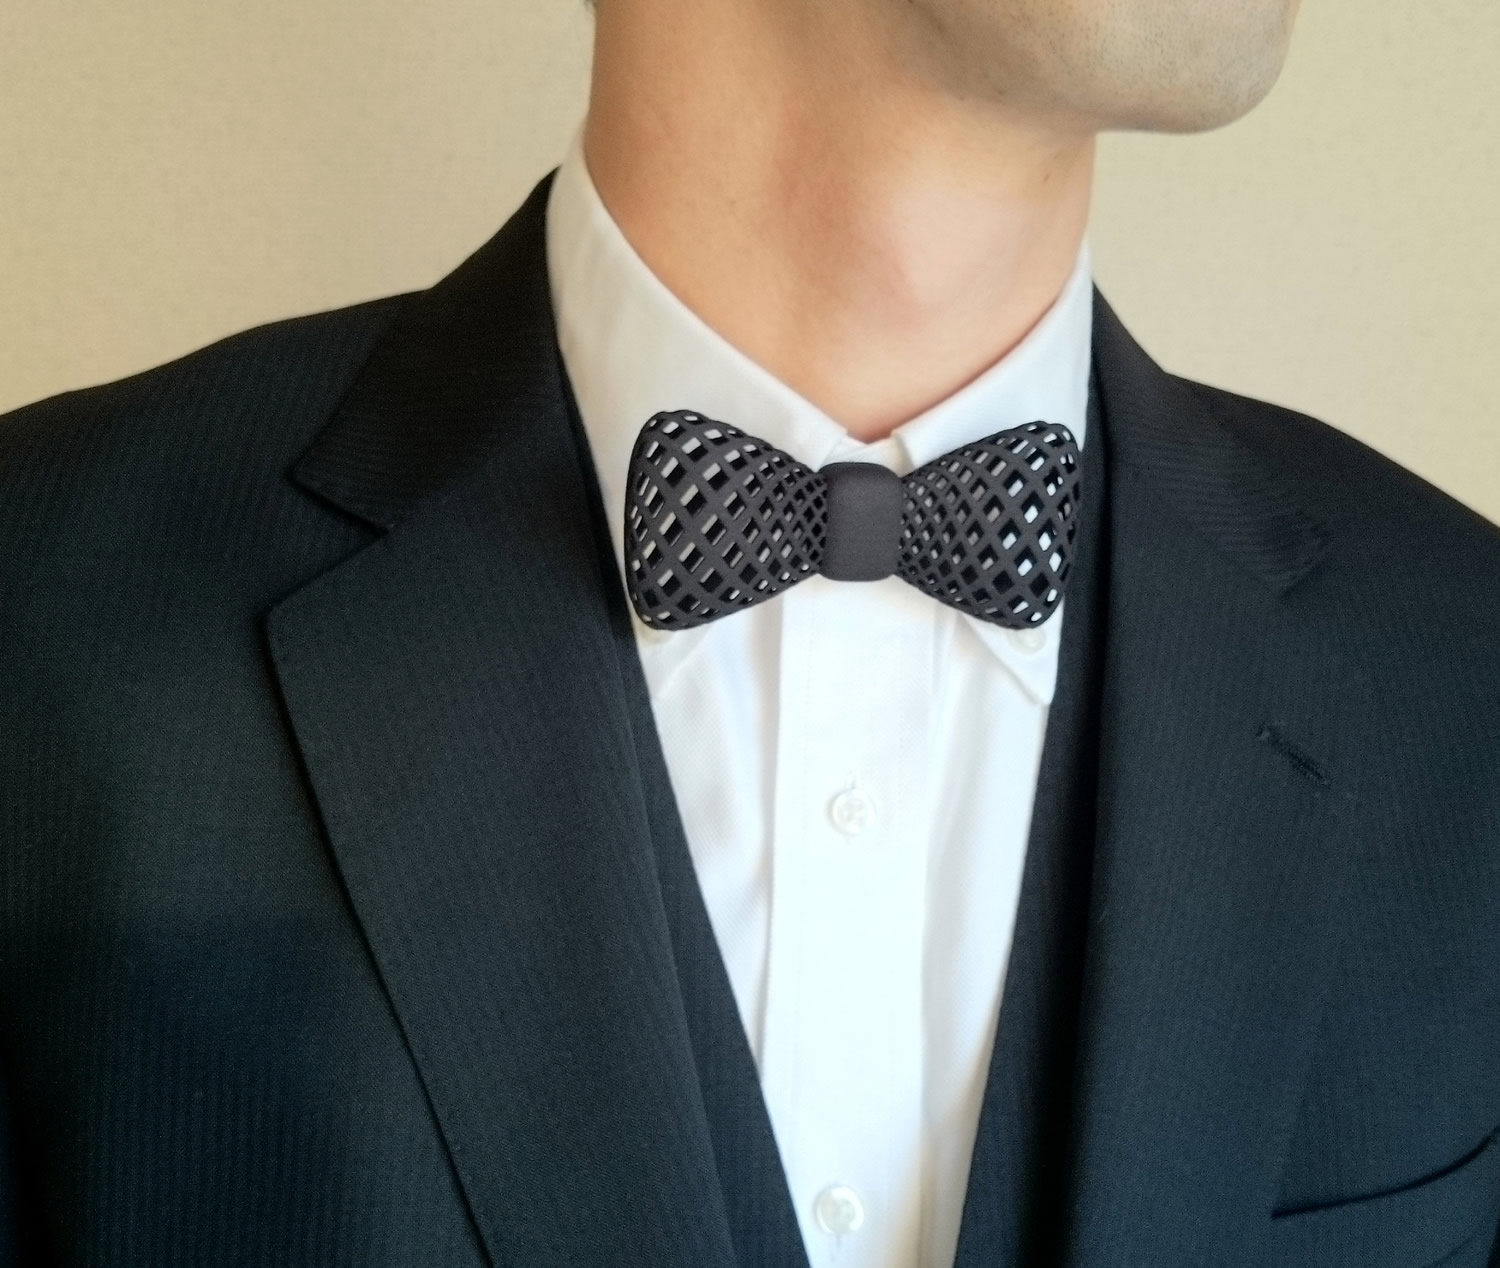 The BowTie Bow Tie by Kazunori Takeishi, Lim Shing Ee